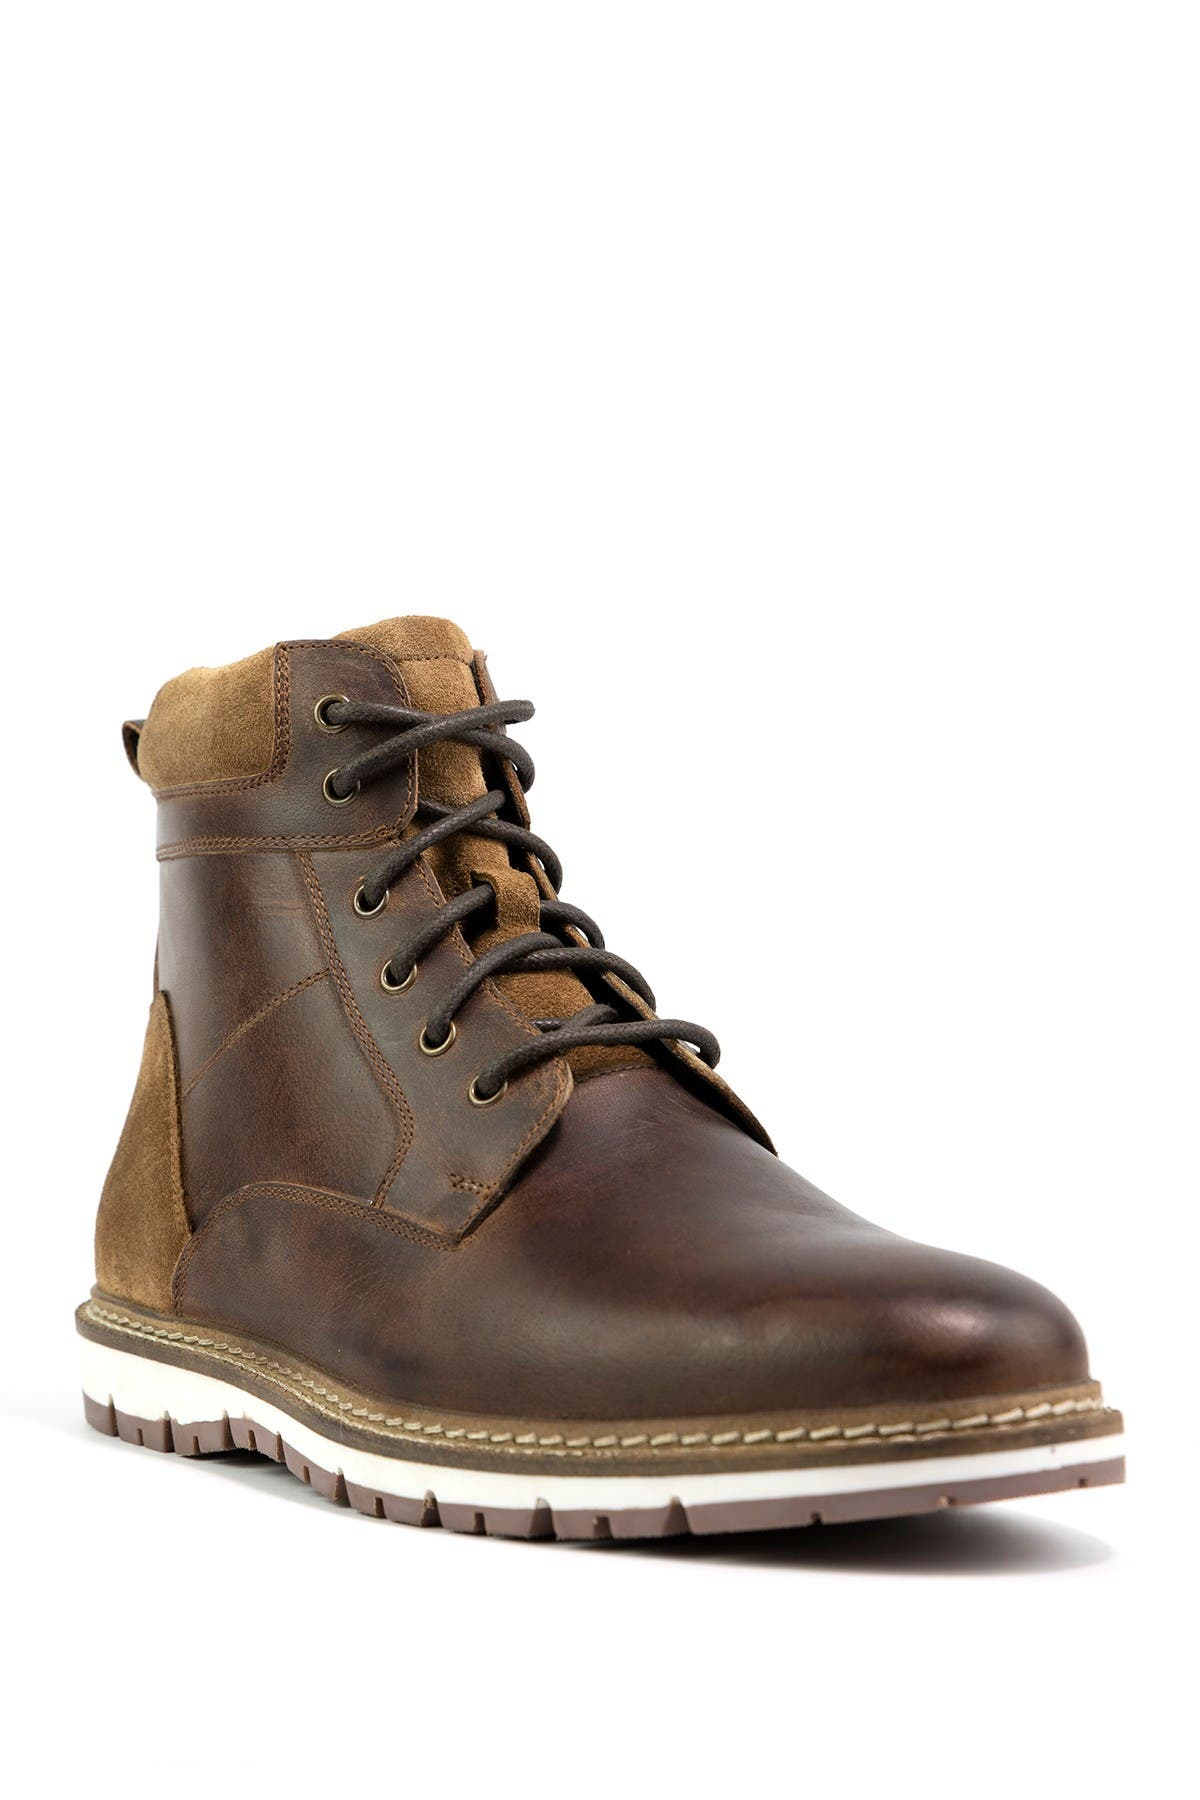 Image of Crevo Buxton Lace-Up Boot